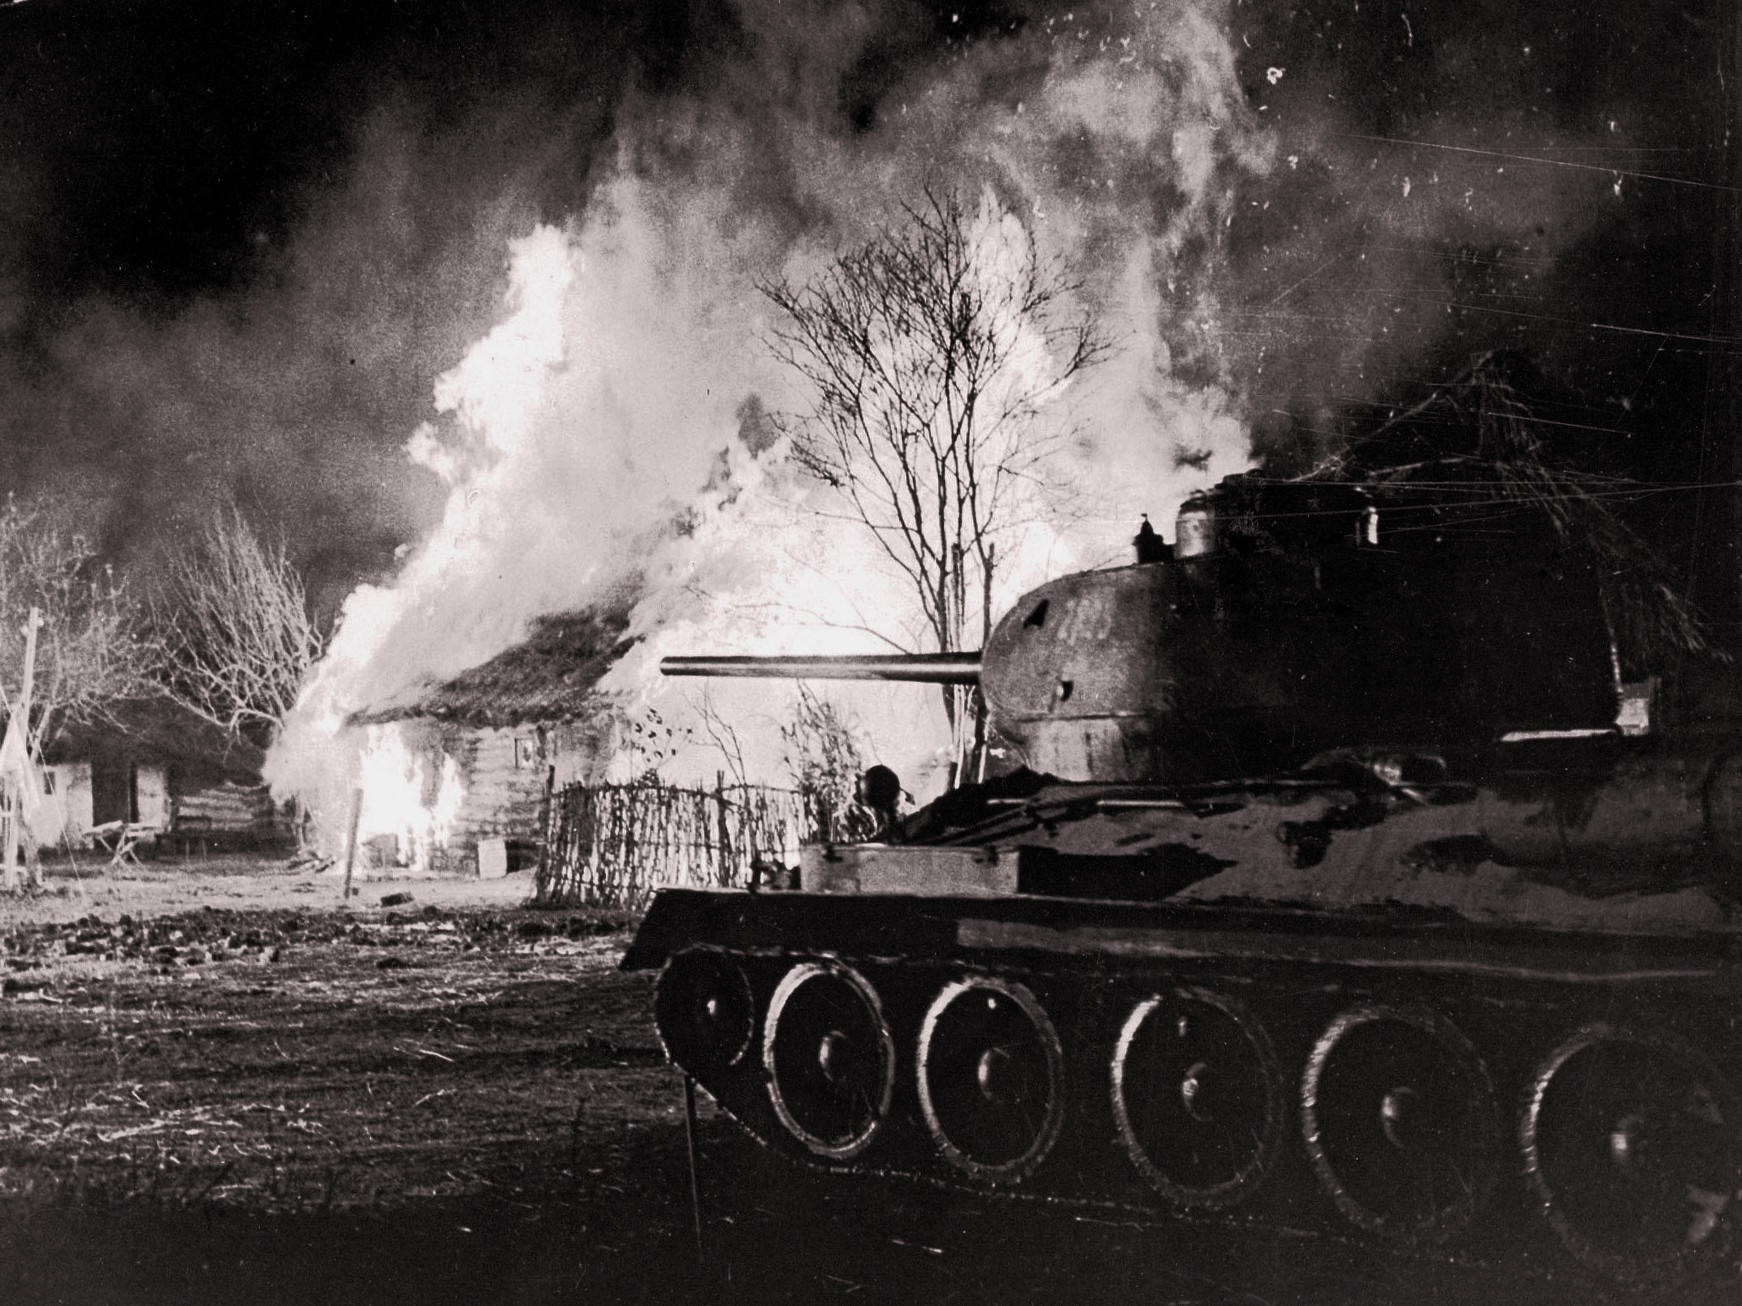 Battle Of Kursk Images | History Lovers Club | Page 9